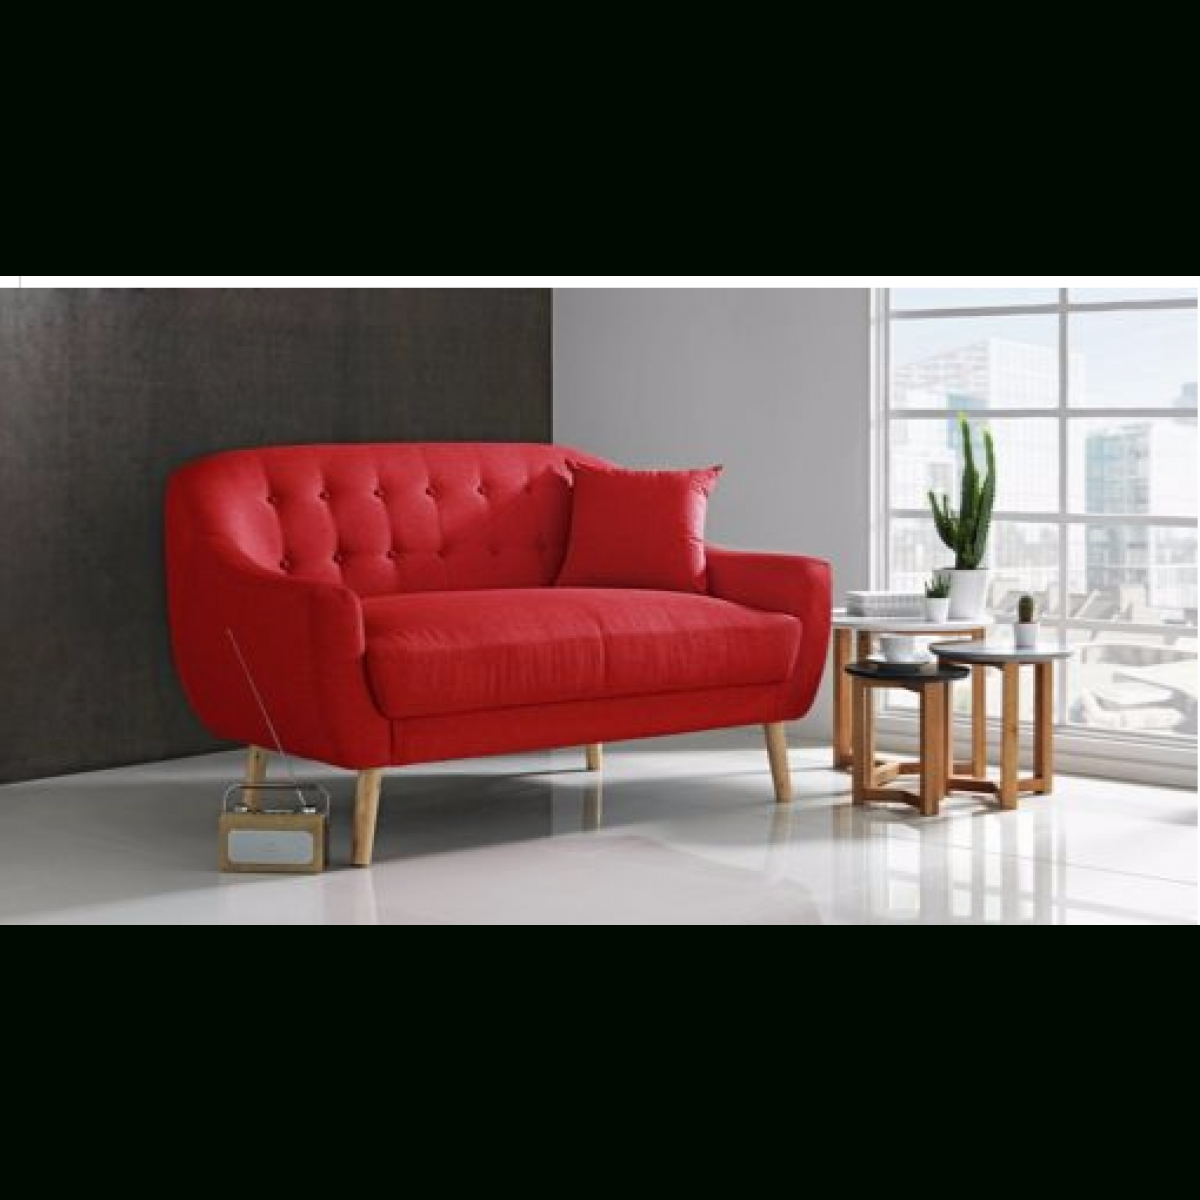 Widely Used Hygena Lexie Retro Compact Fabric 2 Seater Sofa – Poppy Red Pertaining To Retro Sofas (View 14 of 15)